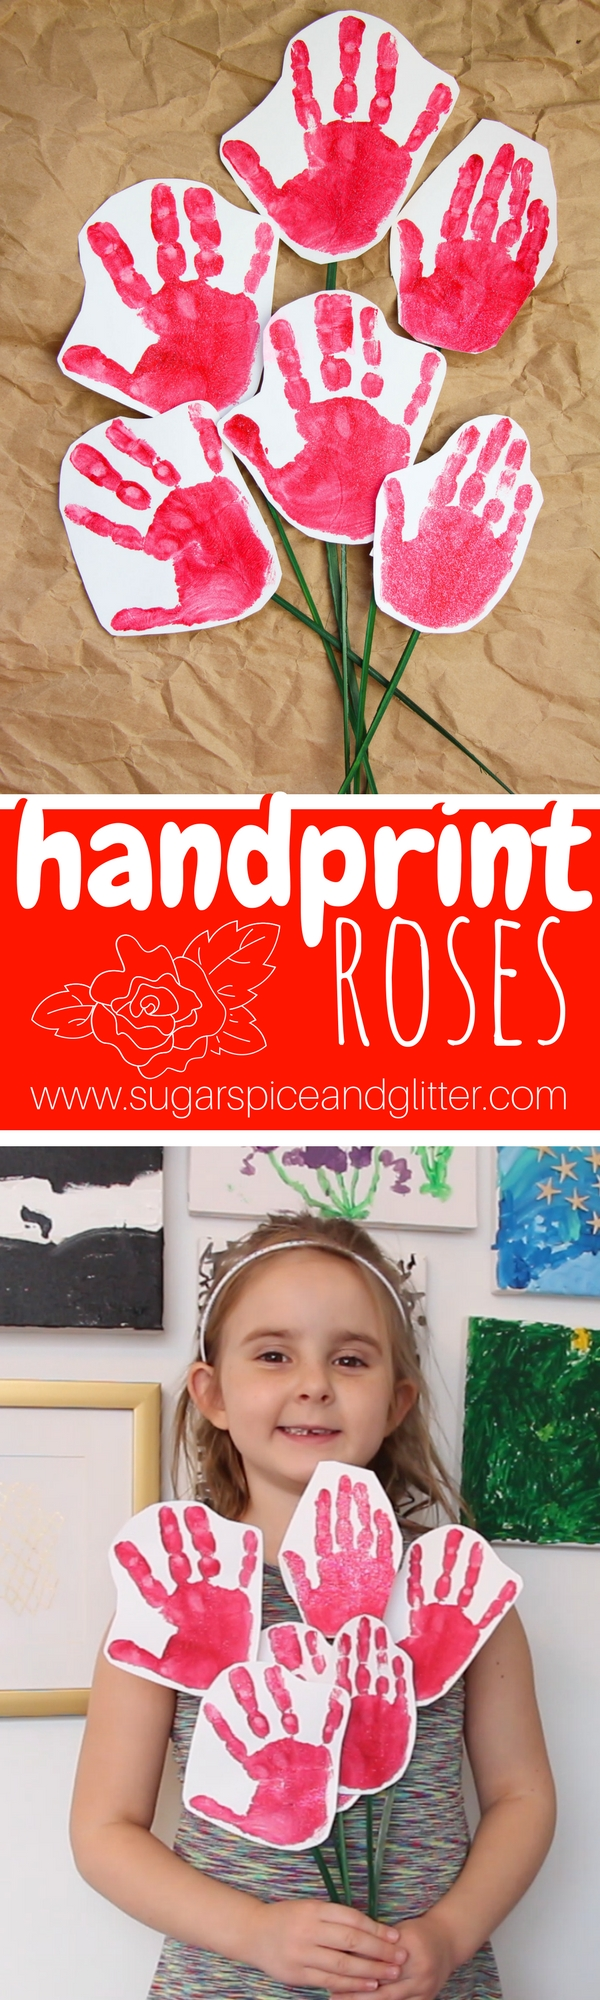 Kids will be so proud to give these handprint roses for Valentine's Day or as a Mother's Day craft